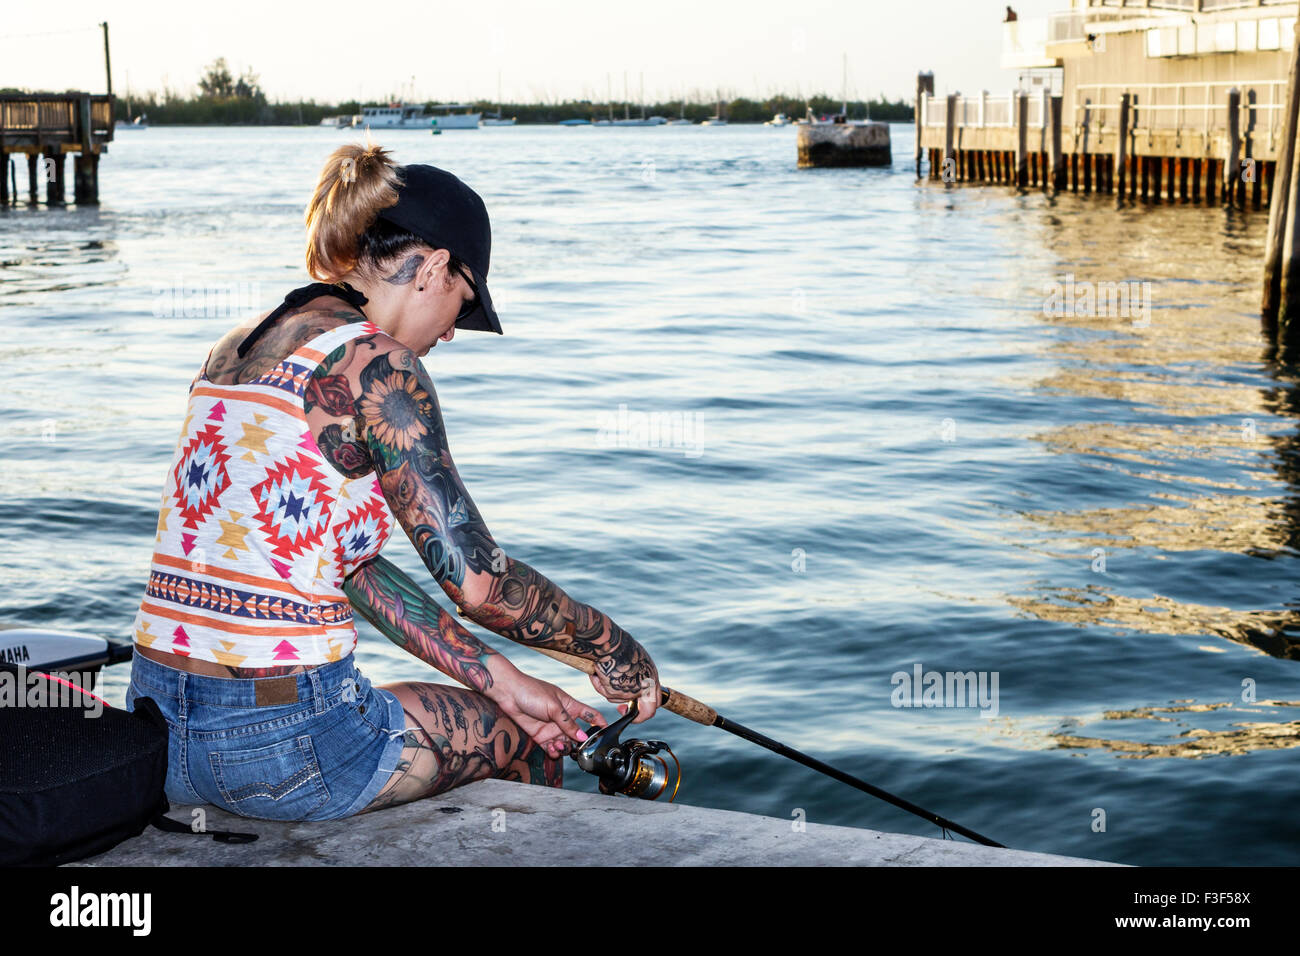 Key west florida keys sunset pier woman tattoos fishing for Key west fishing pier